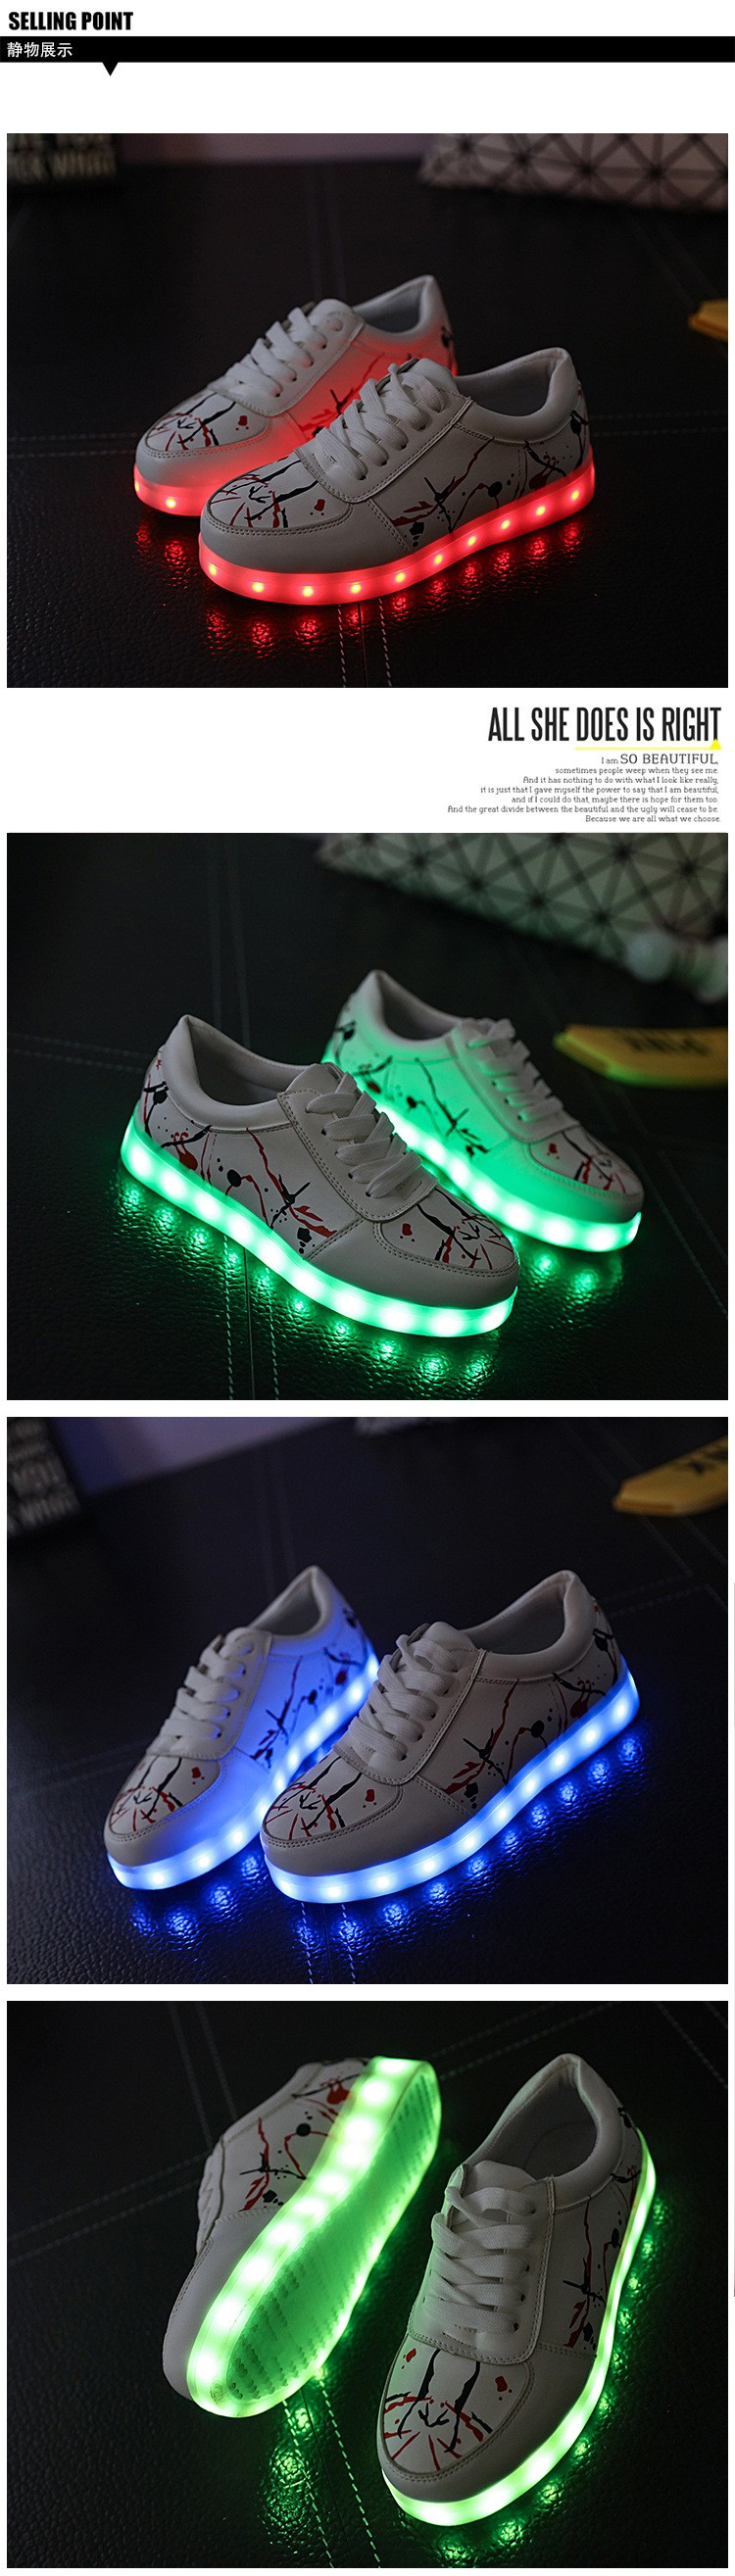 Hot Sale new arrived Women LED Shoes for Adults White Glowing Light Up Flat Shoes Luminous Recharging Size 35-40